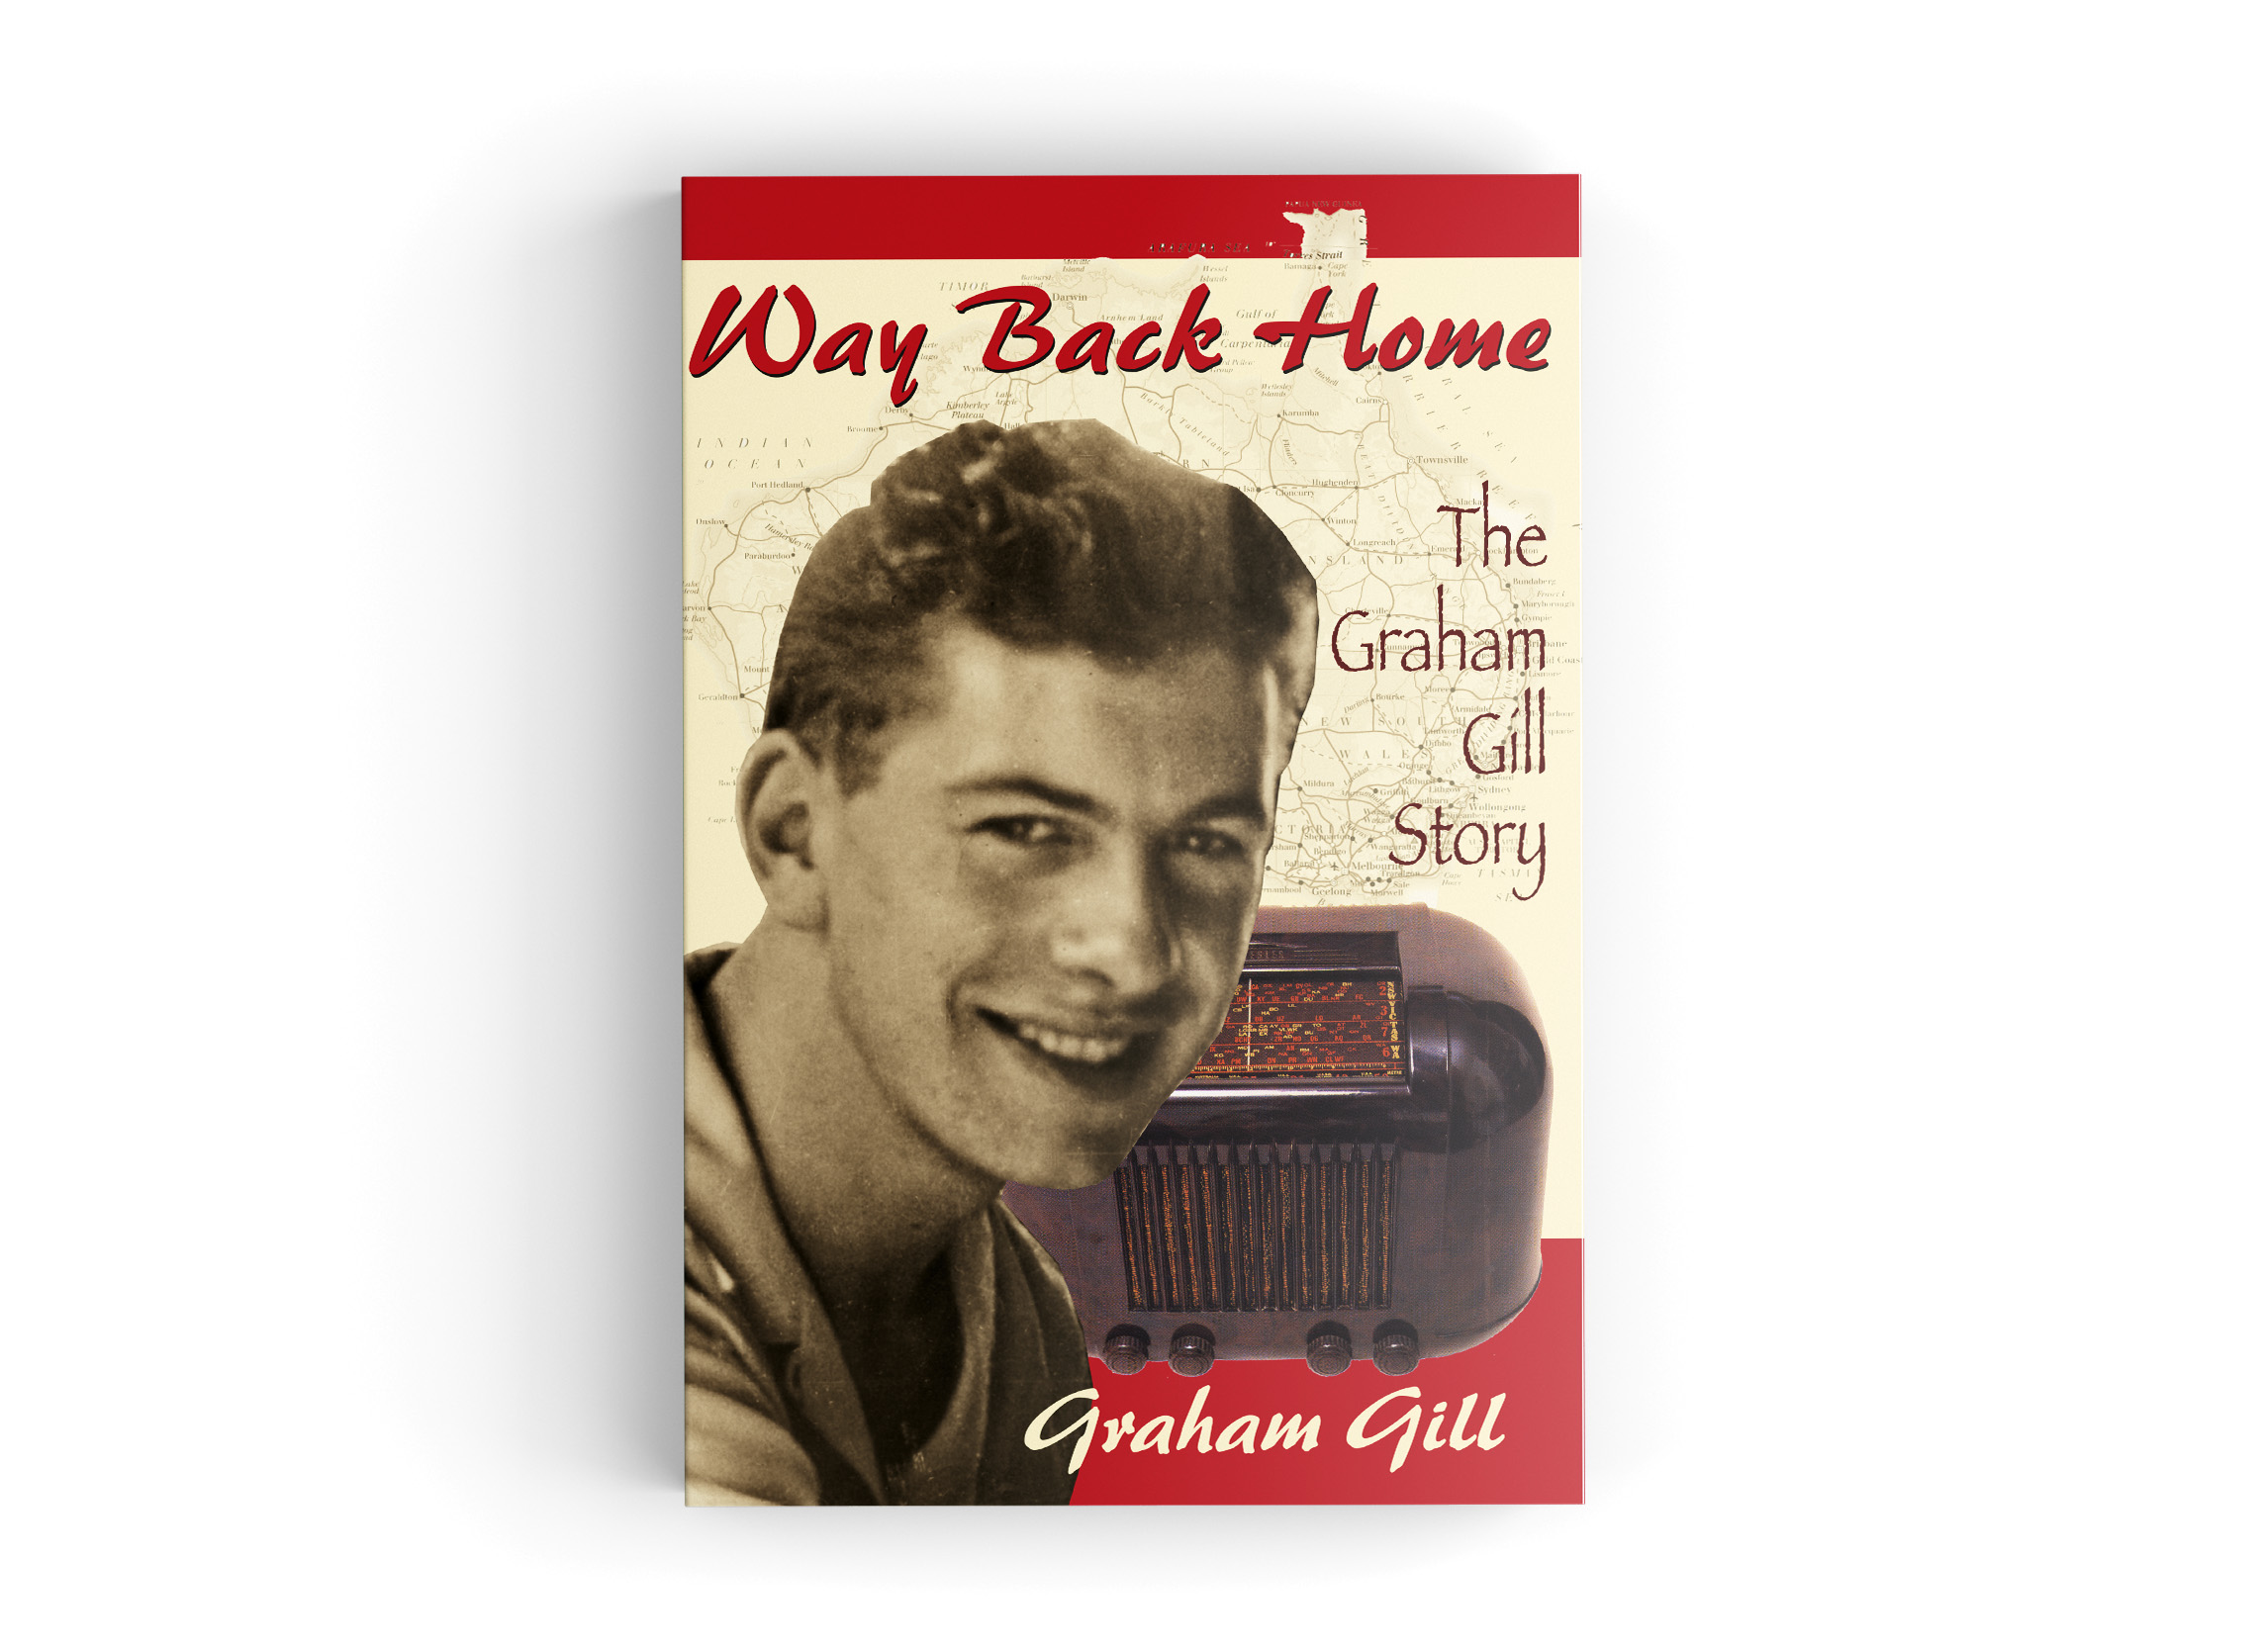 waybackhome-book-cover